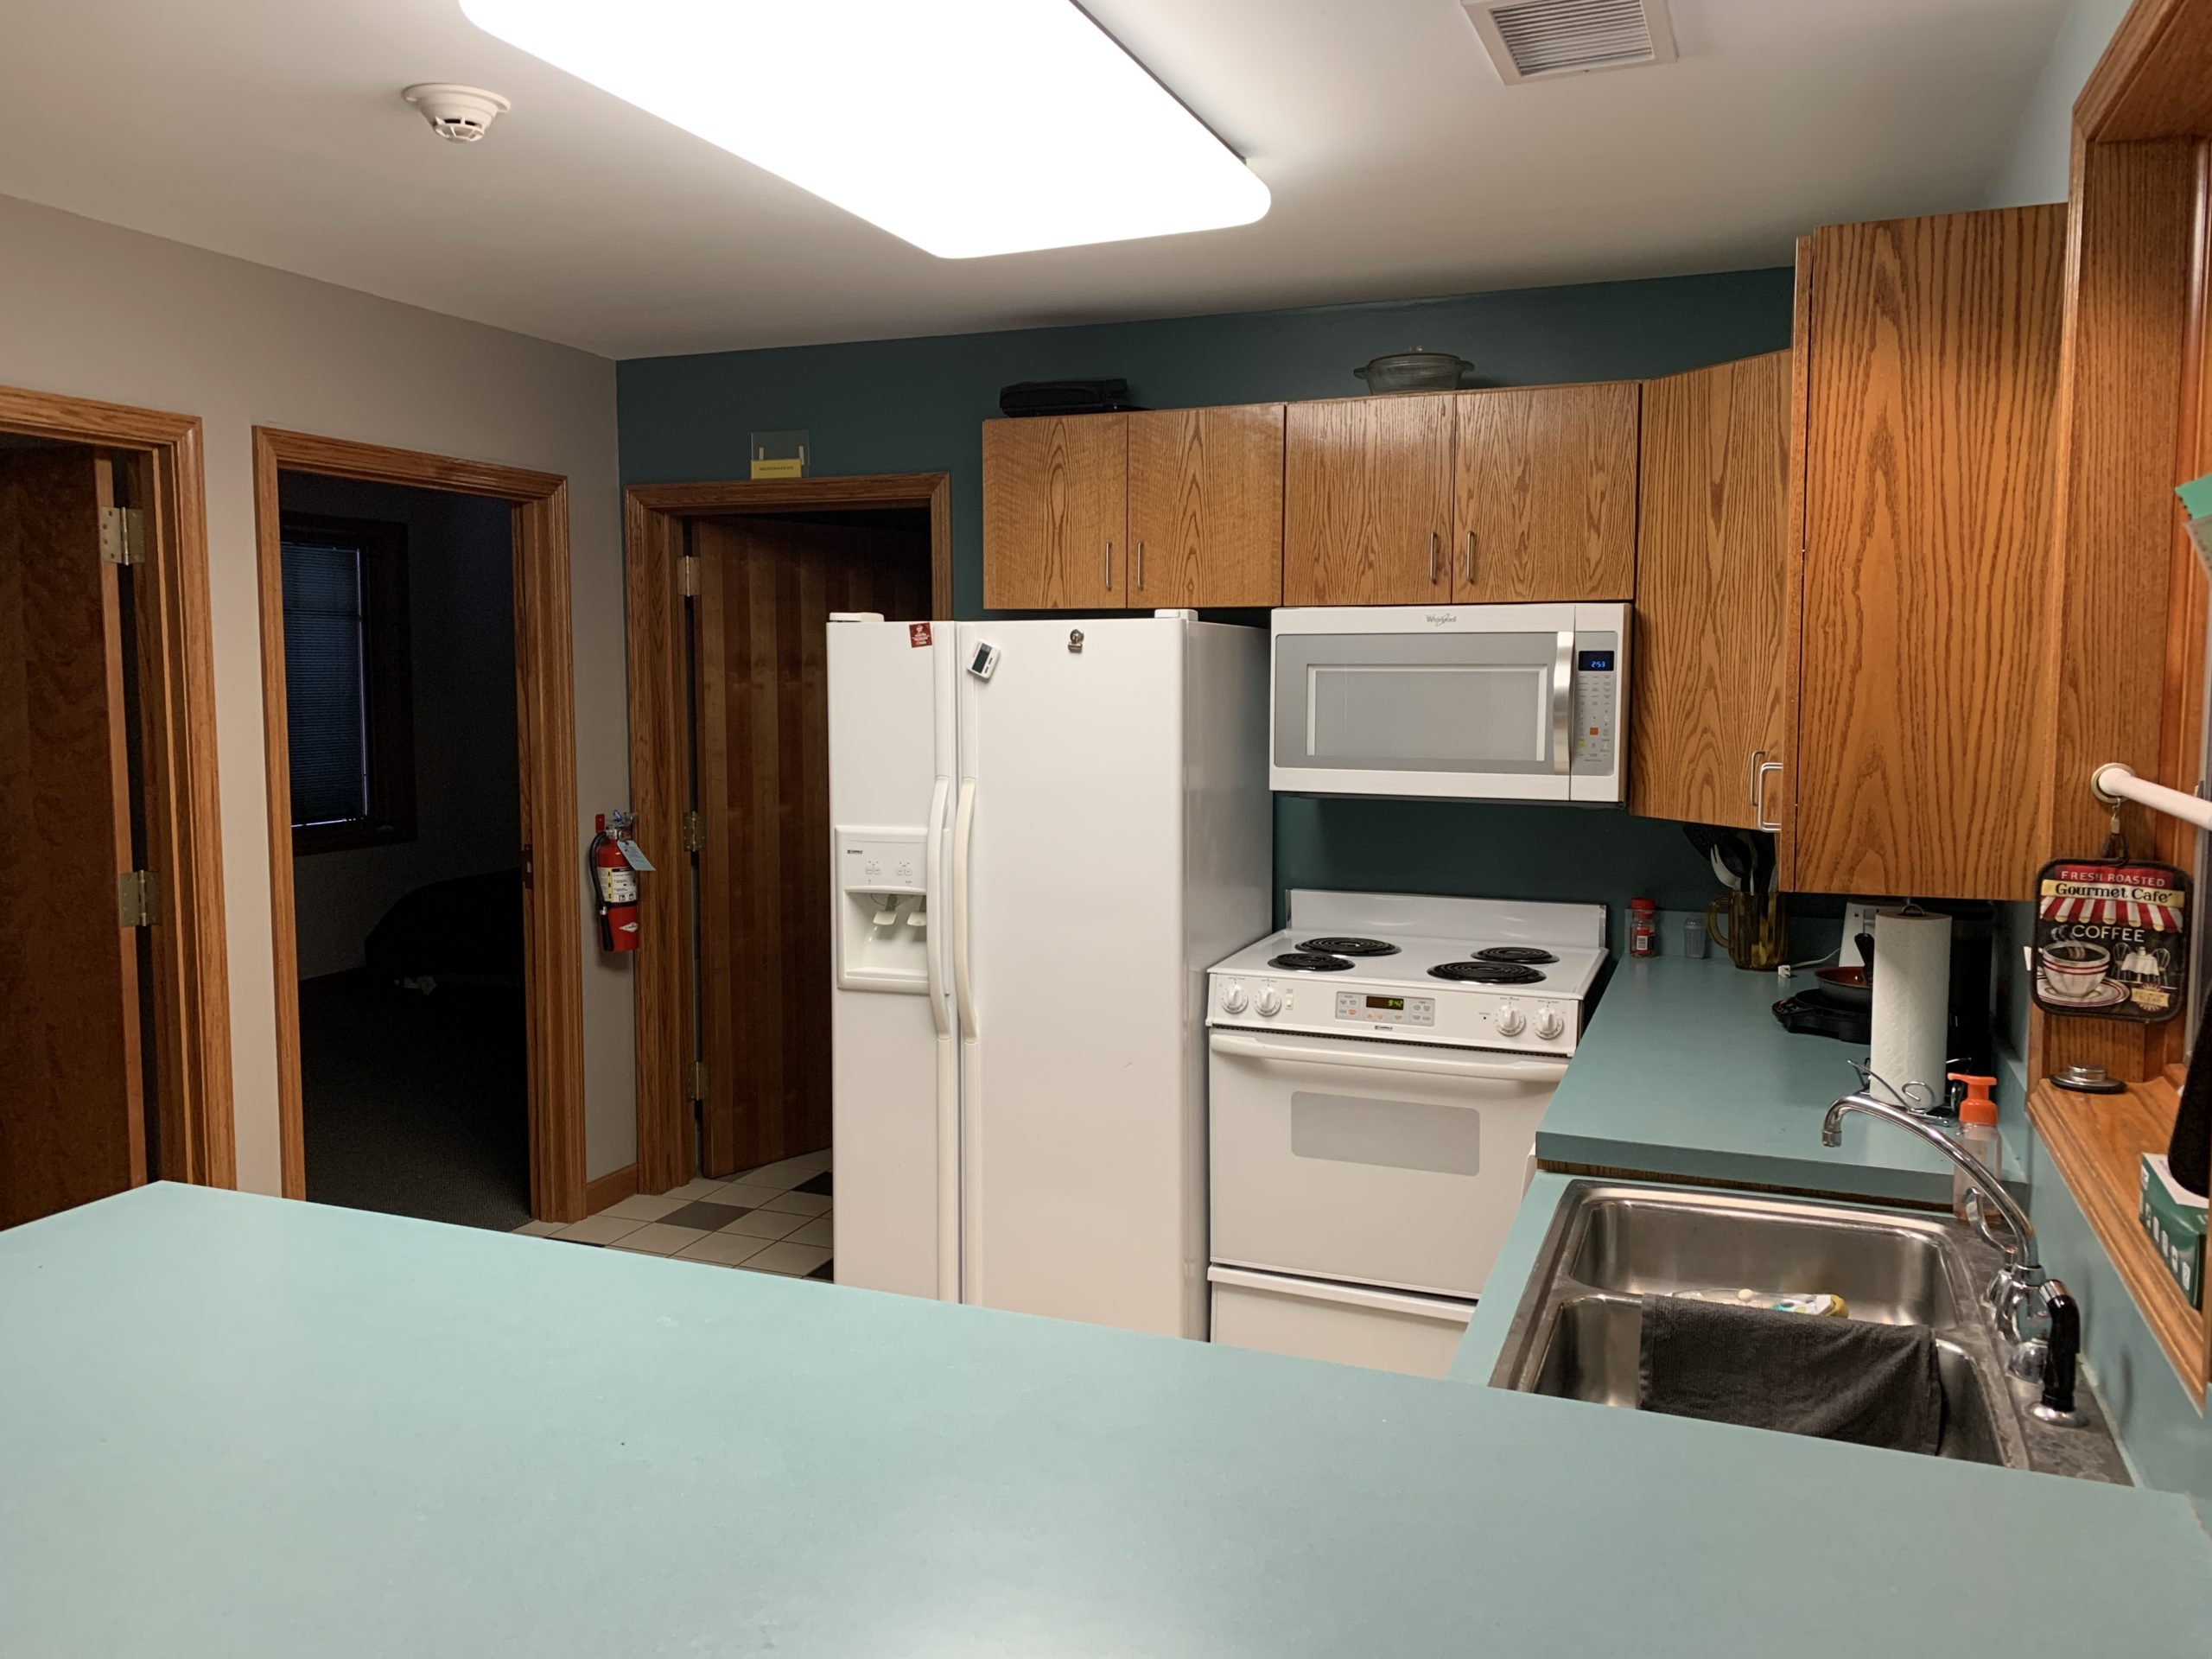 Cottage Fridge, Oven, Microwave, And Sink